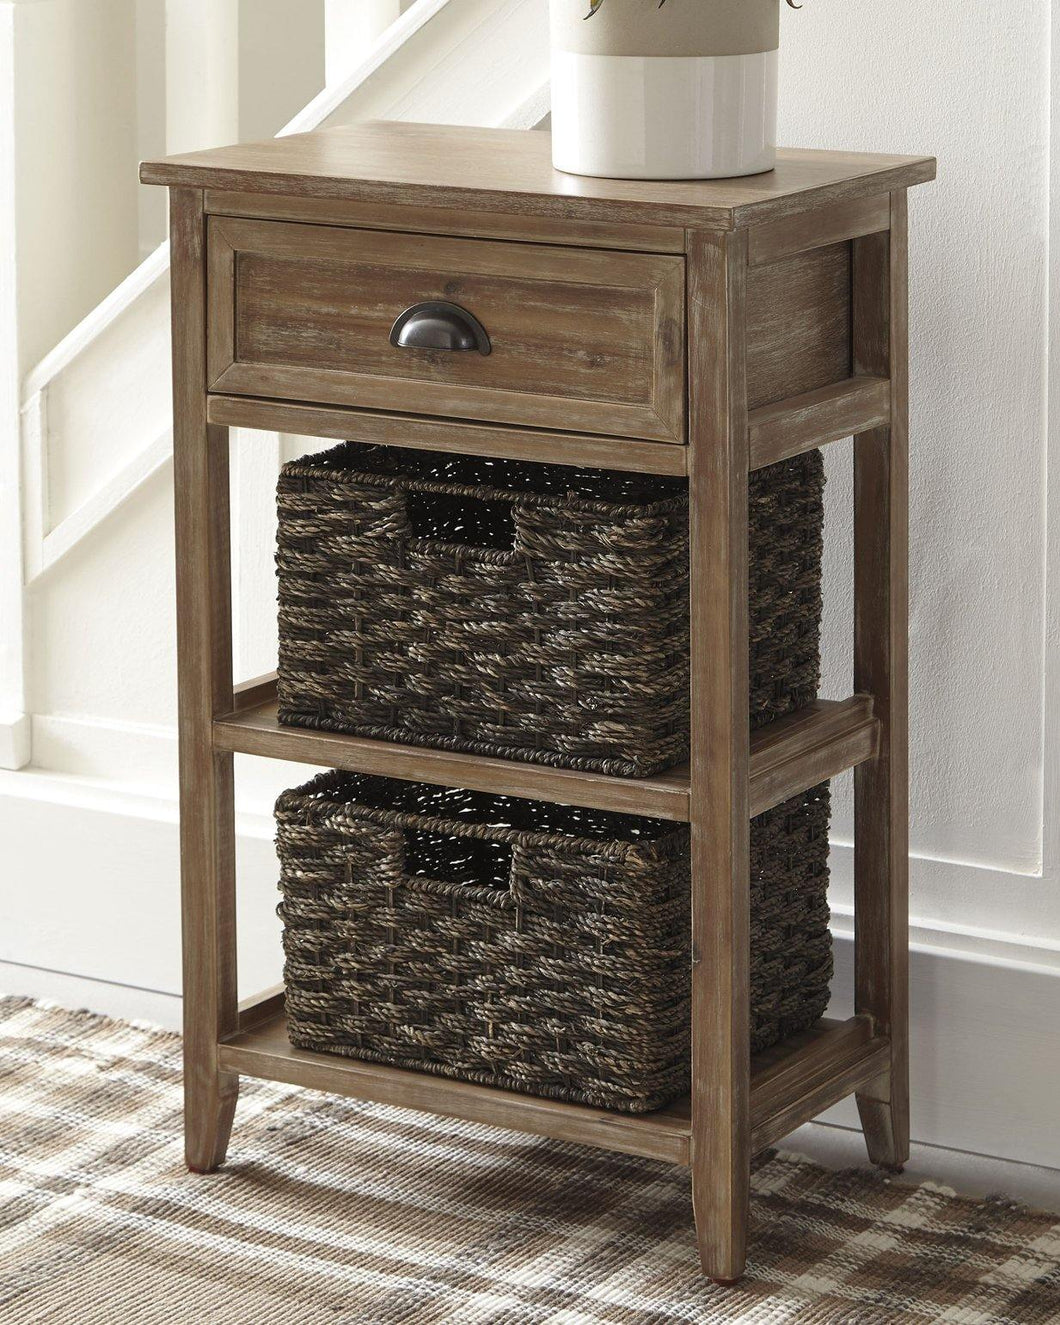 Oslember Accent Table A4000140 By Ashley Furniture from sofafair